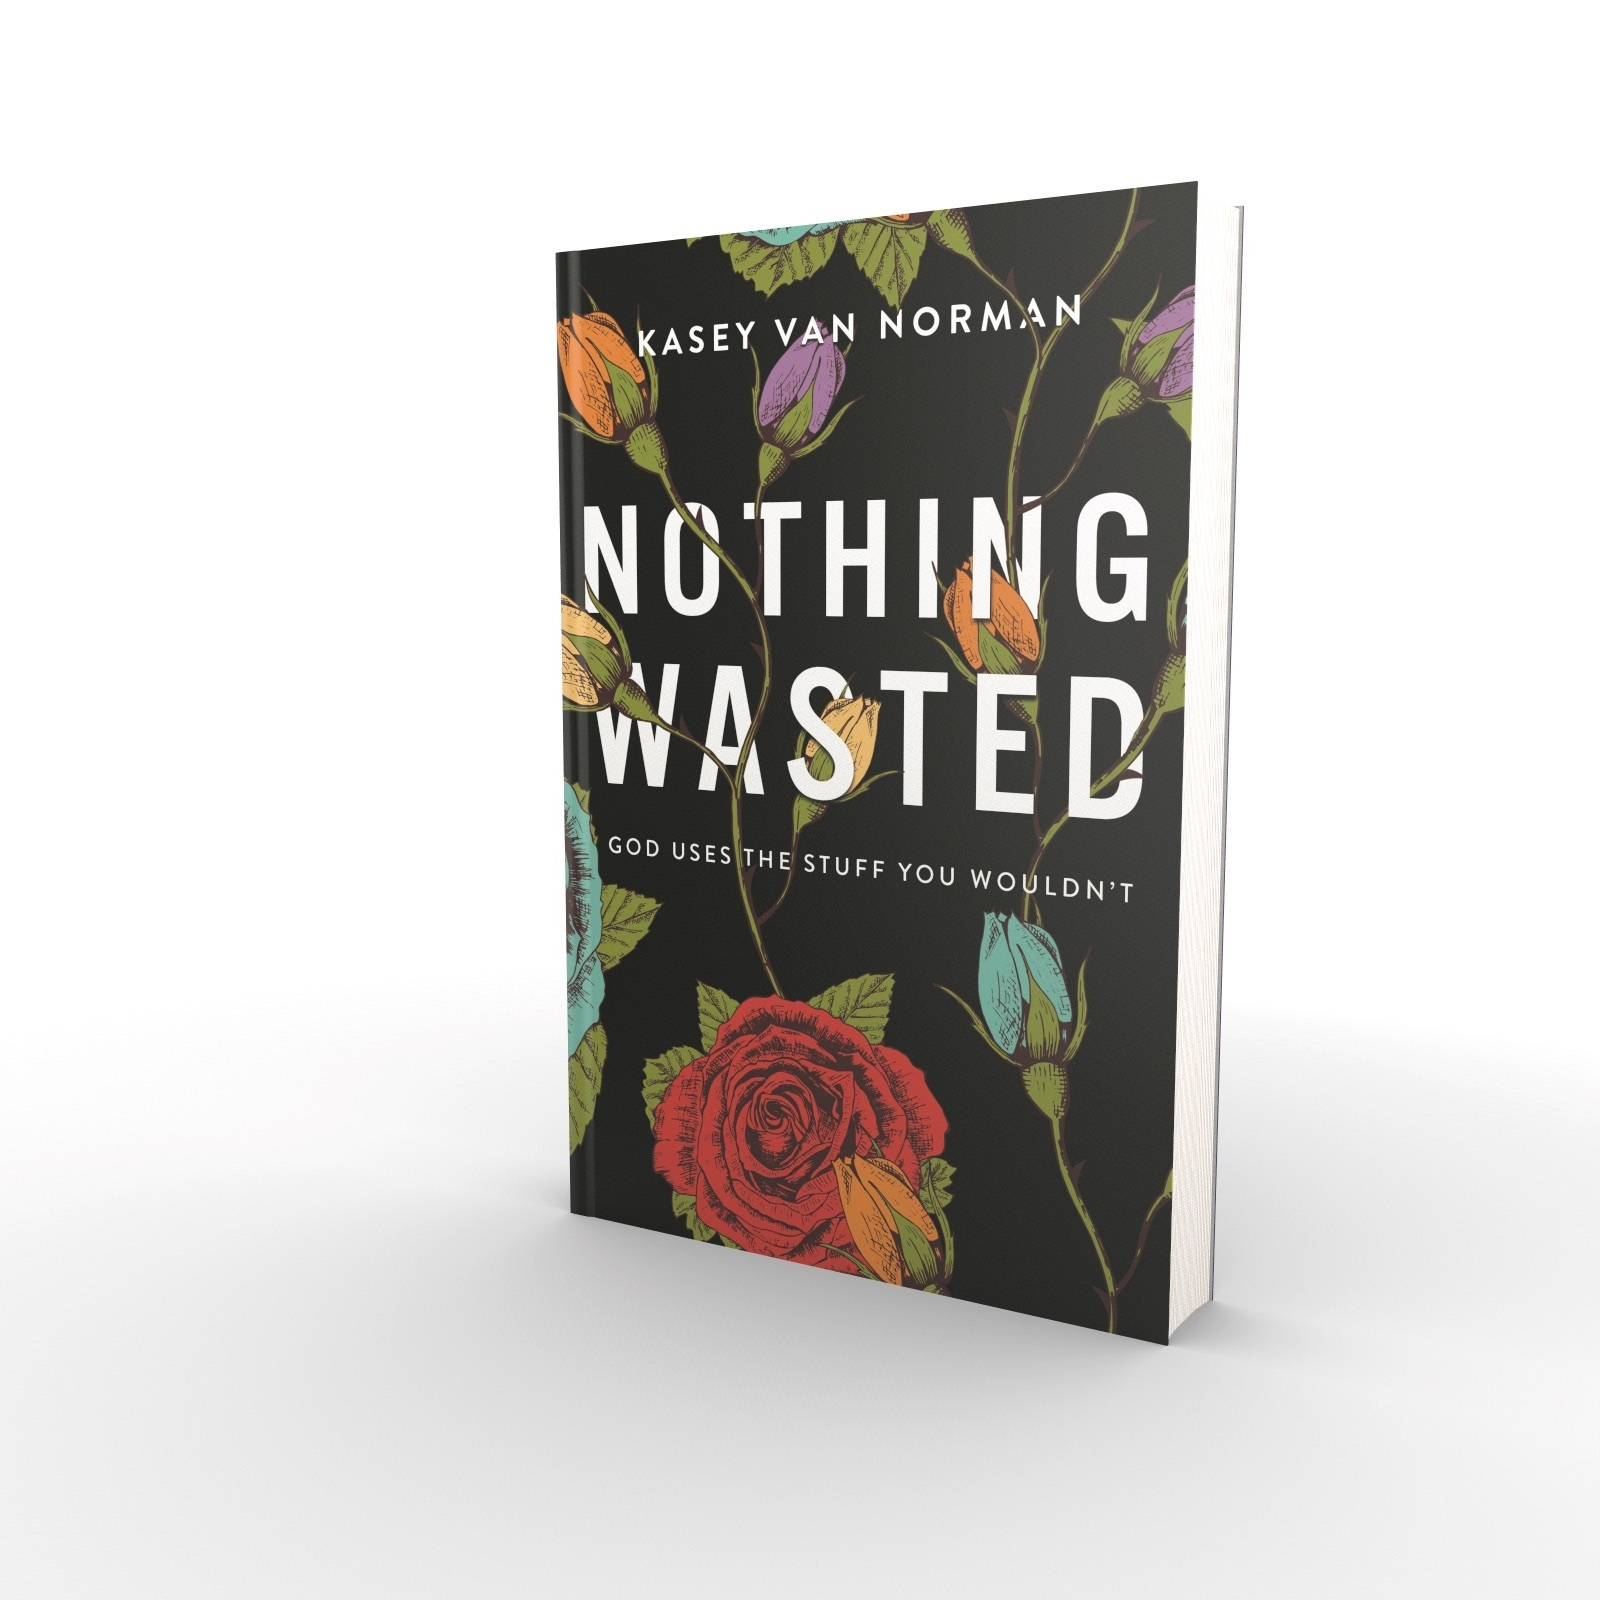 Nothing Wasted - We all have past experiences we wish we could redo, undo, or hide altogether. In Nothing Wasted, counselor and teacher Kasey Van Norman shares how God revealed his specific plan for her life through the most unlikely, embarrassing, and painful seasons of her past. Her vulnerability invites you to discover God's personal and purposeful design for your future, not in spite of your story, but through it.AVAILABLE NOVEMBER 12(your pre-order matters).